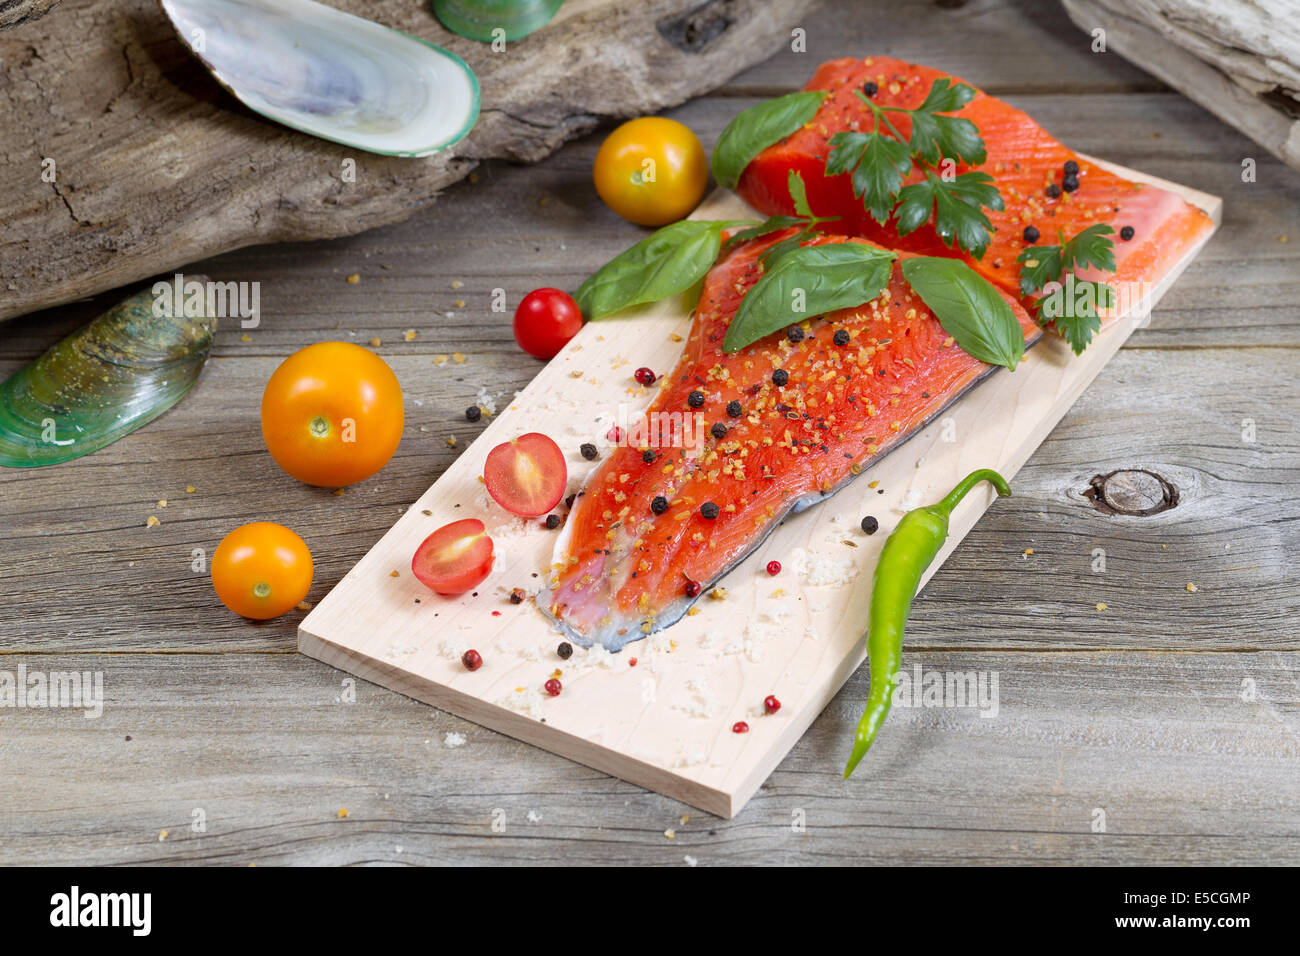 Horizontal view of raw red salmon, skin side down, on maple wood grilling plank with seasoning and other herbs - Stock Image